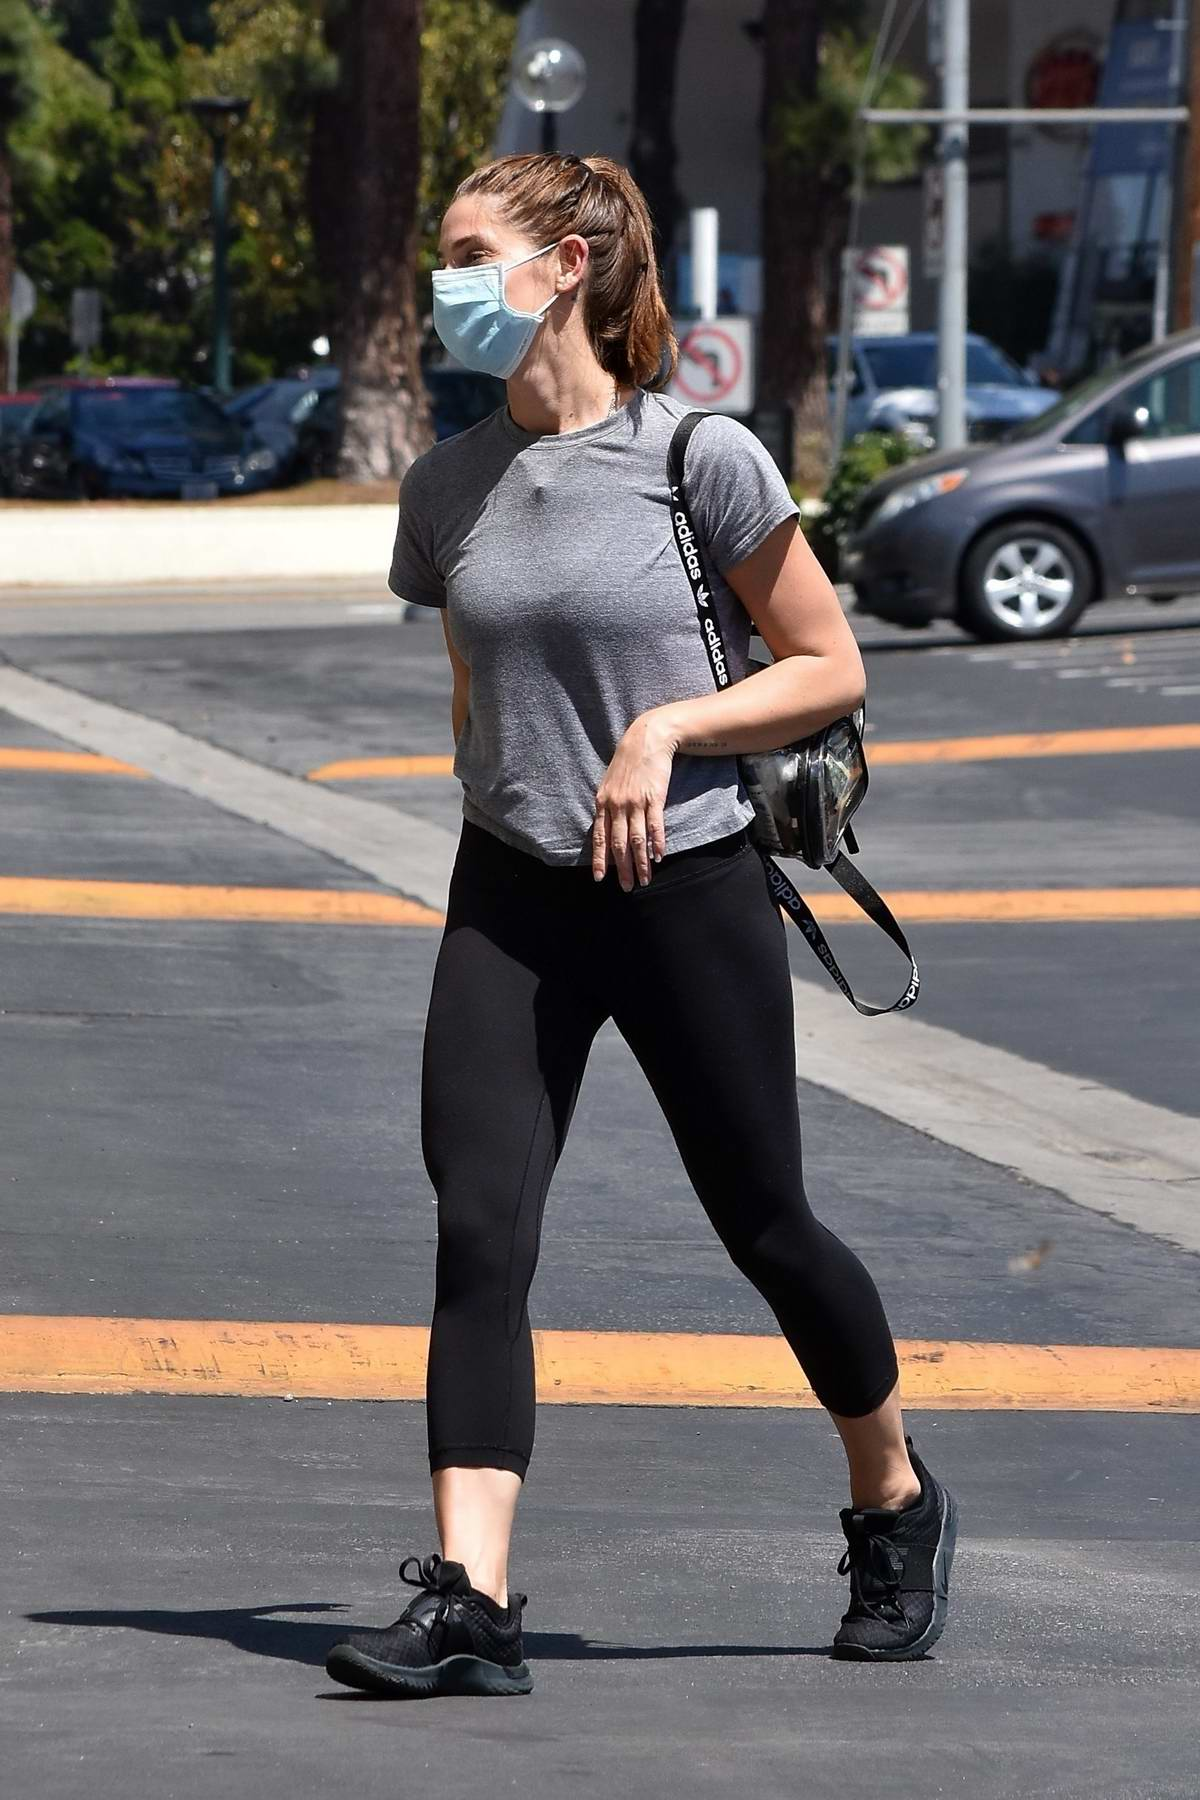 Ashley Greene picks up some groceries from Ralphs after a mid-day workout session in Studio City, California